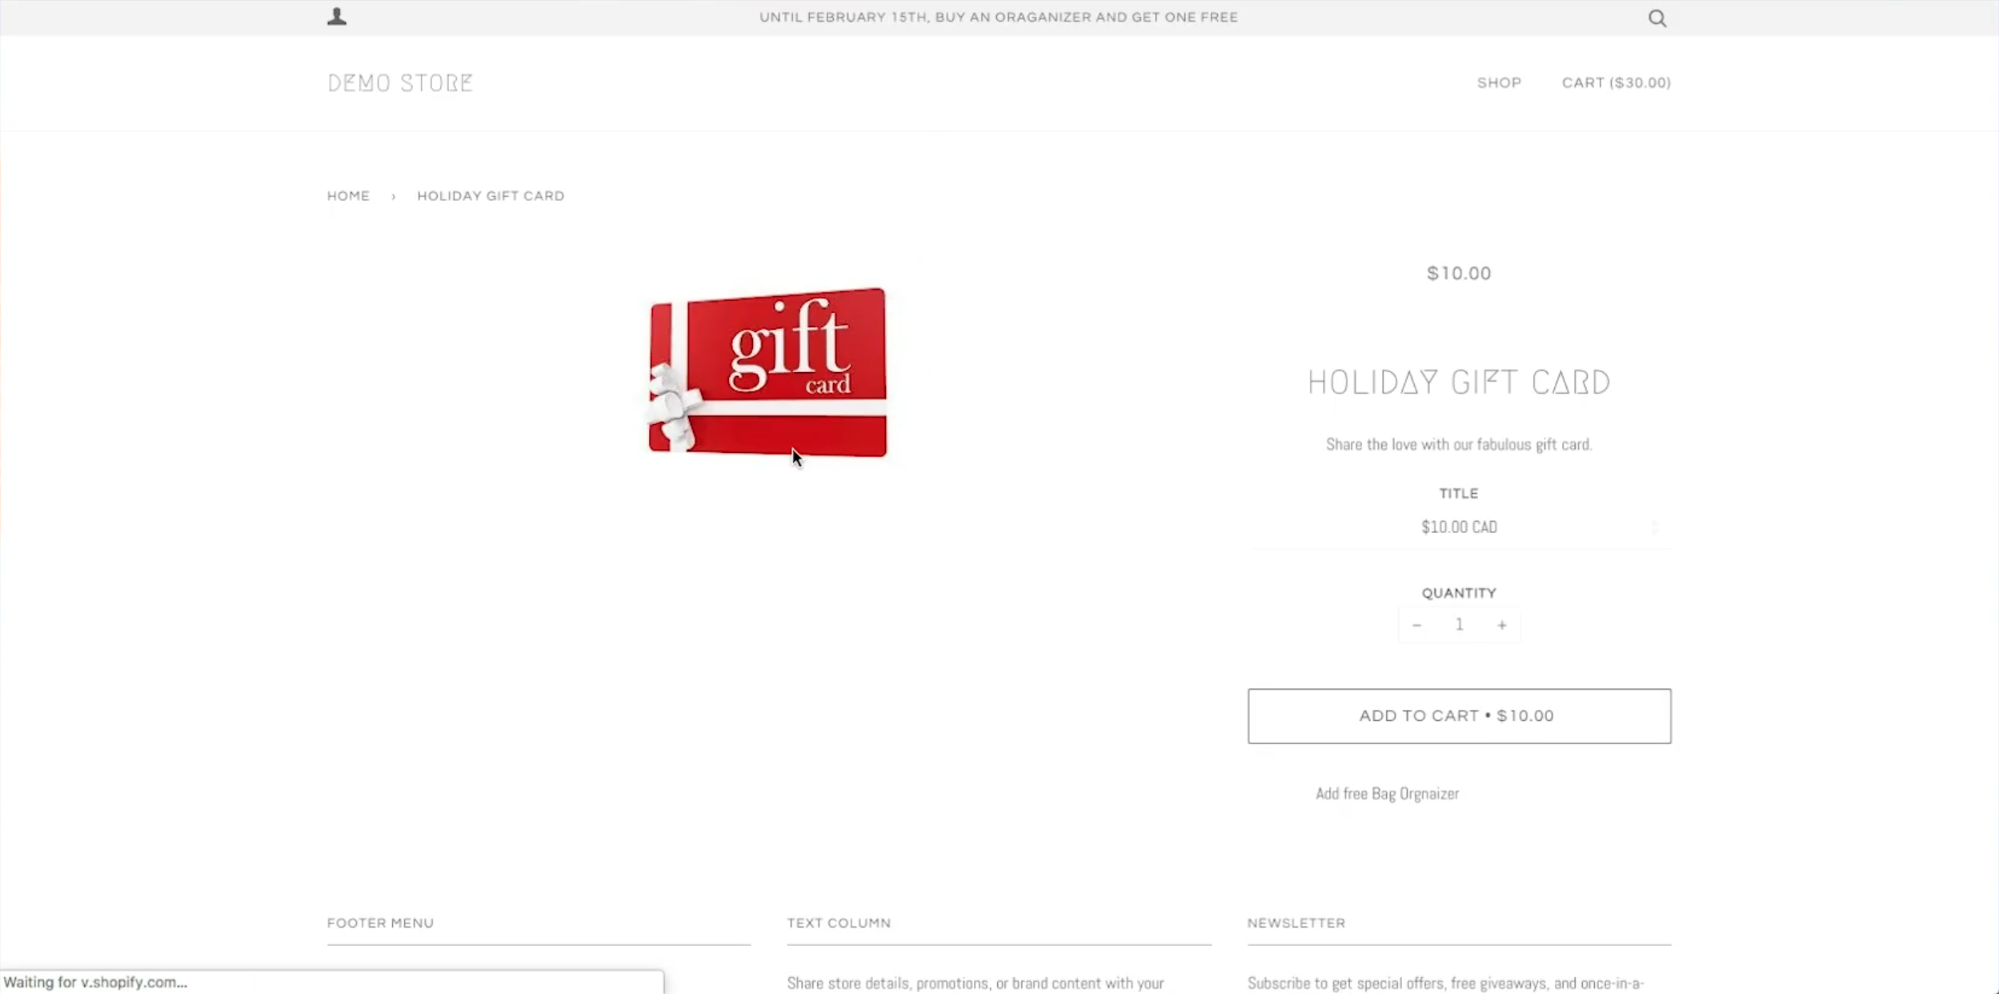 A screenshot of the gift card available for purchase in the online store.